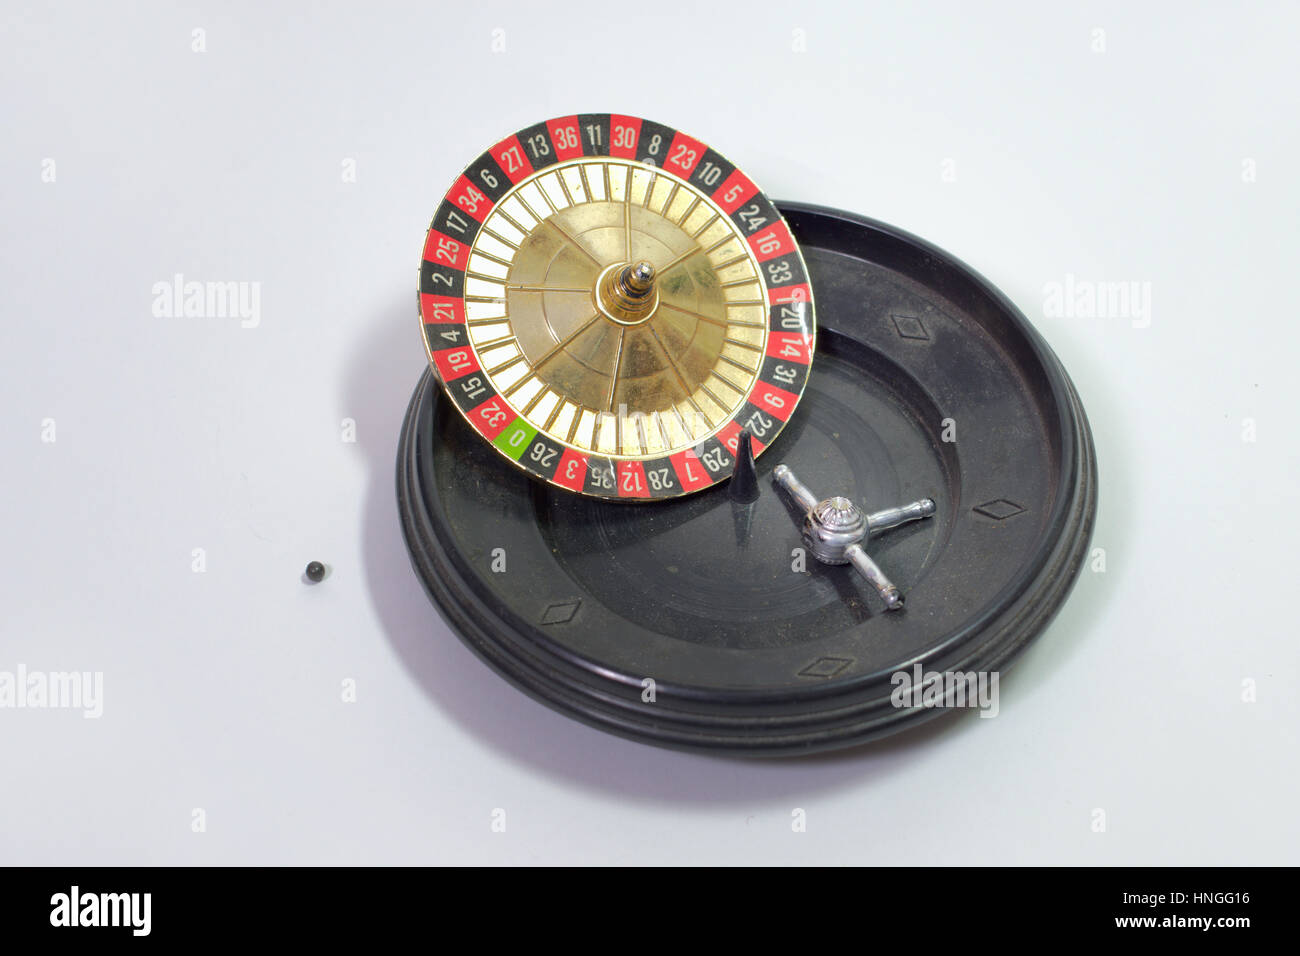 Toy roulette, broken down into its component parts - Stock Image